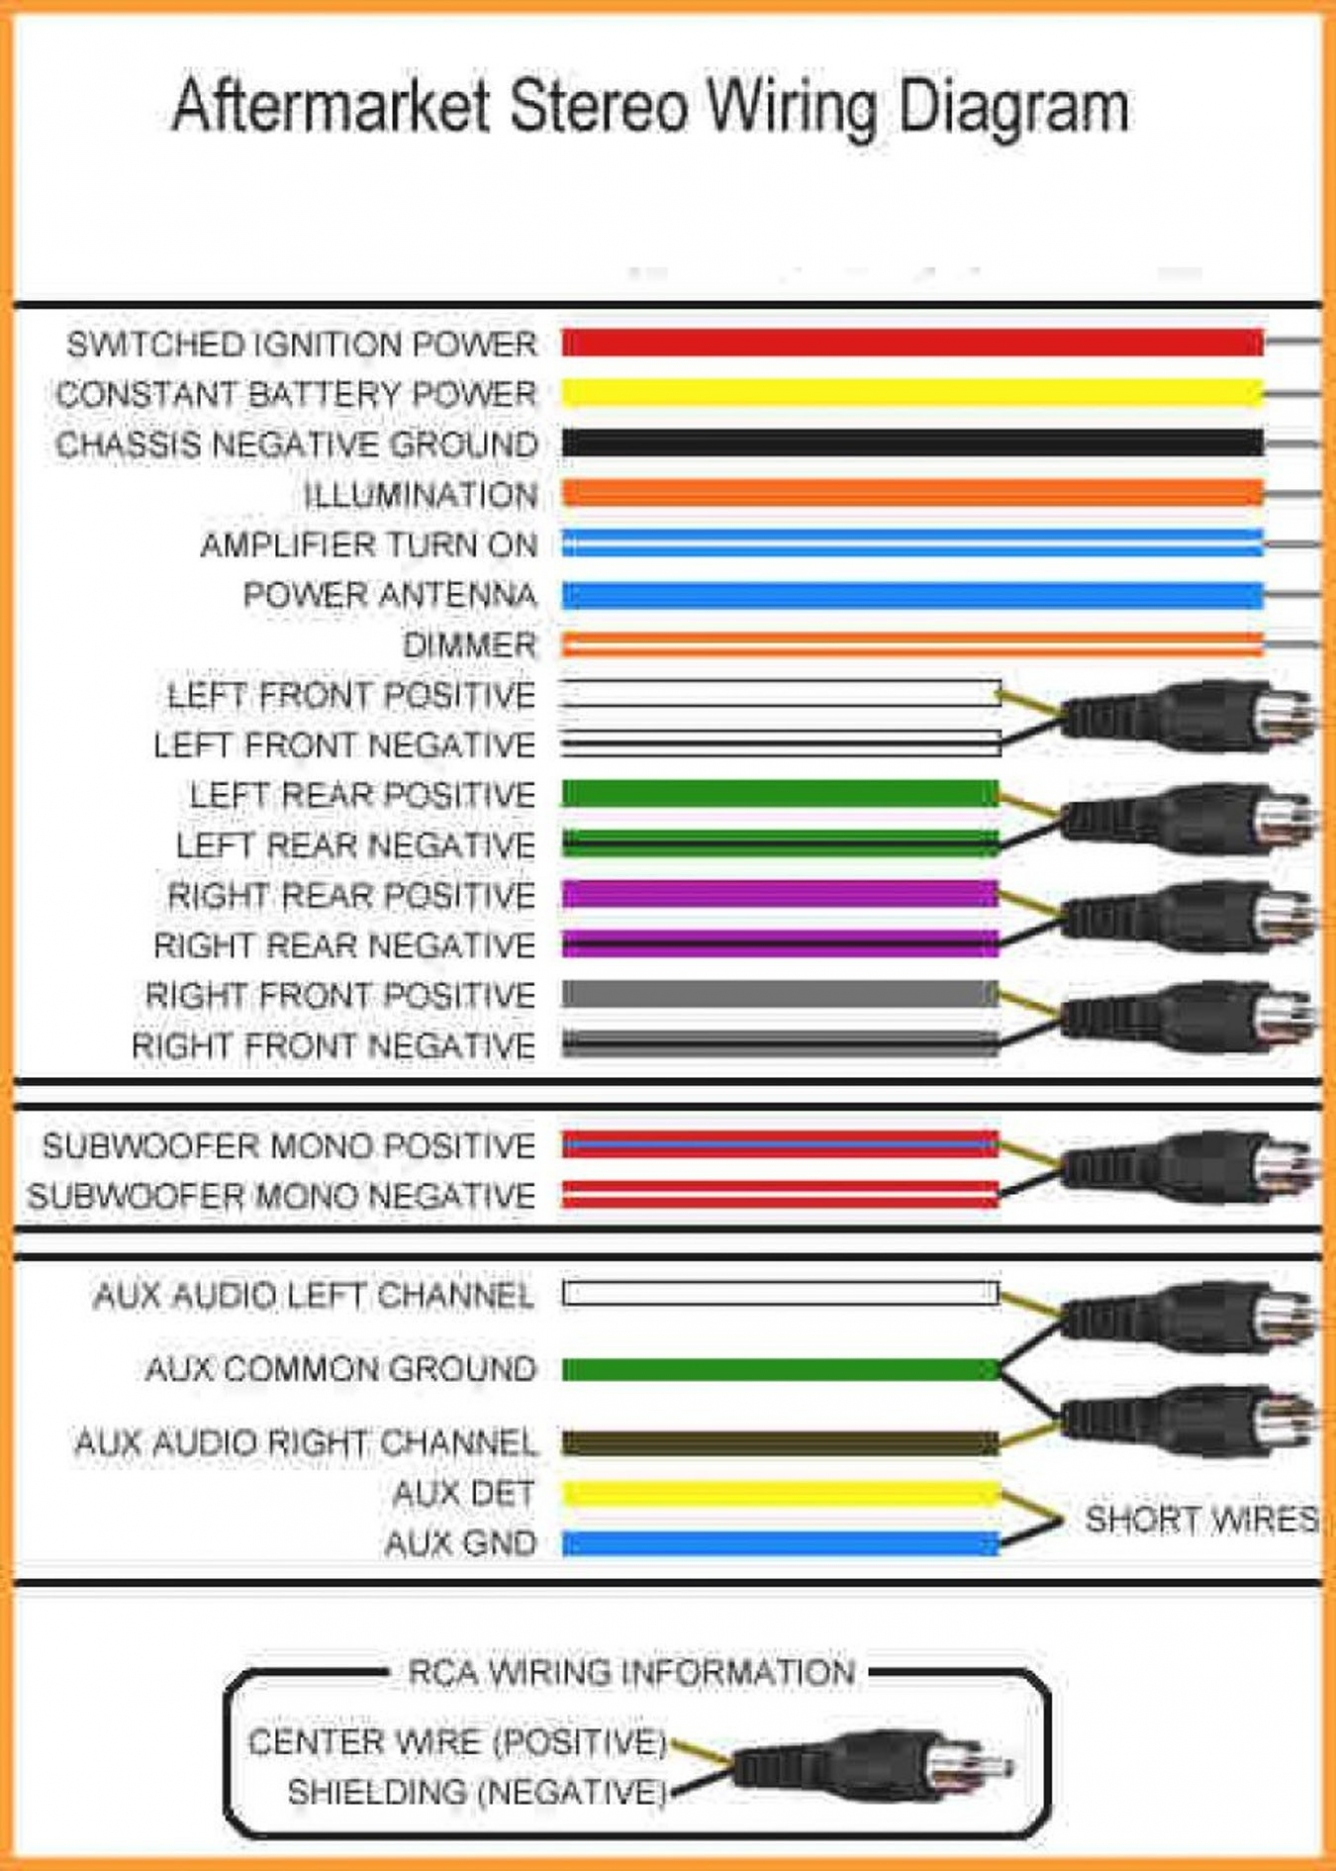 Kenwood Radio Wiring Colors - Cooler Schematic -  Light-switch.begaya.decorresine.itWiring Diagram Schematics